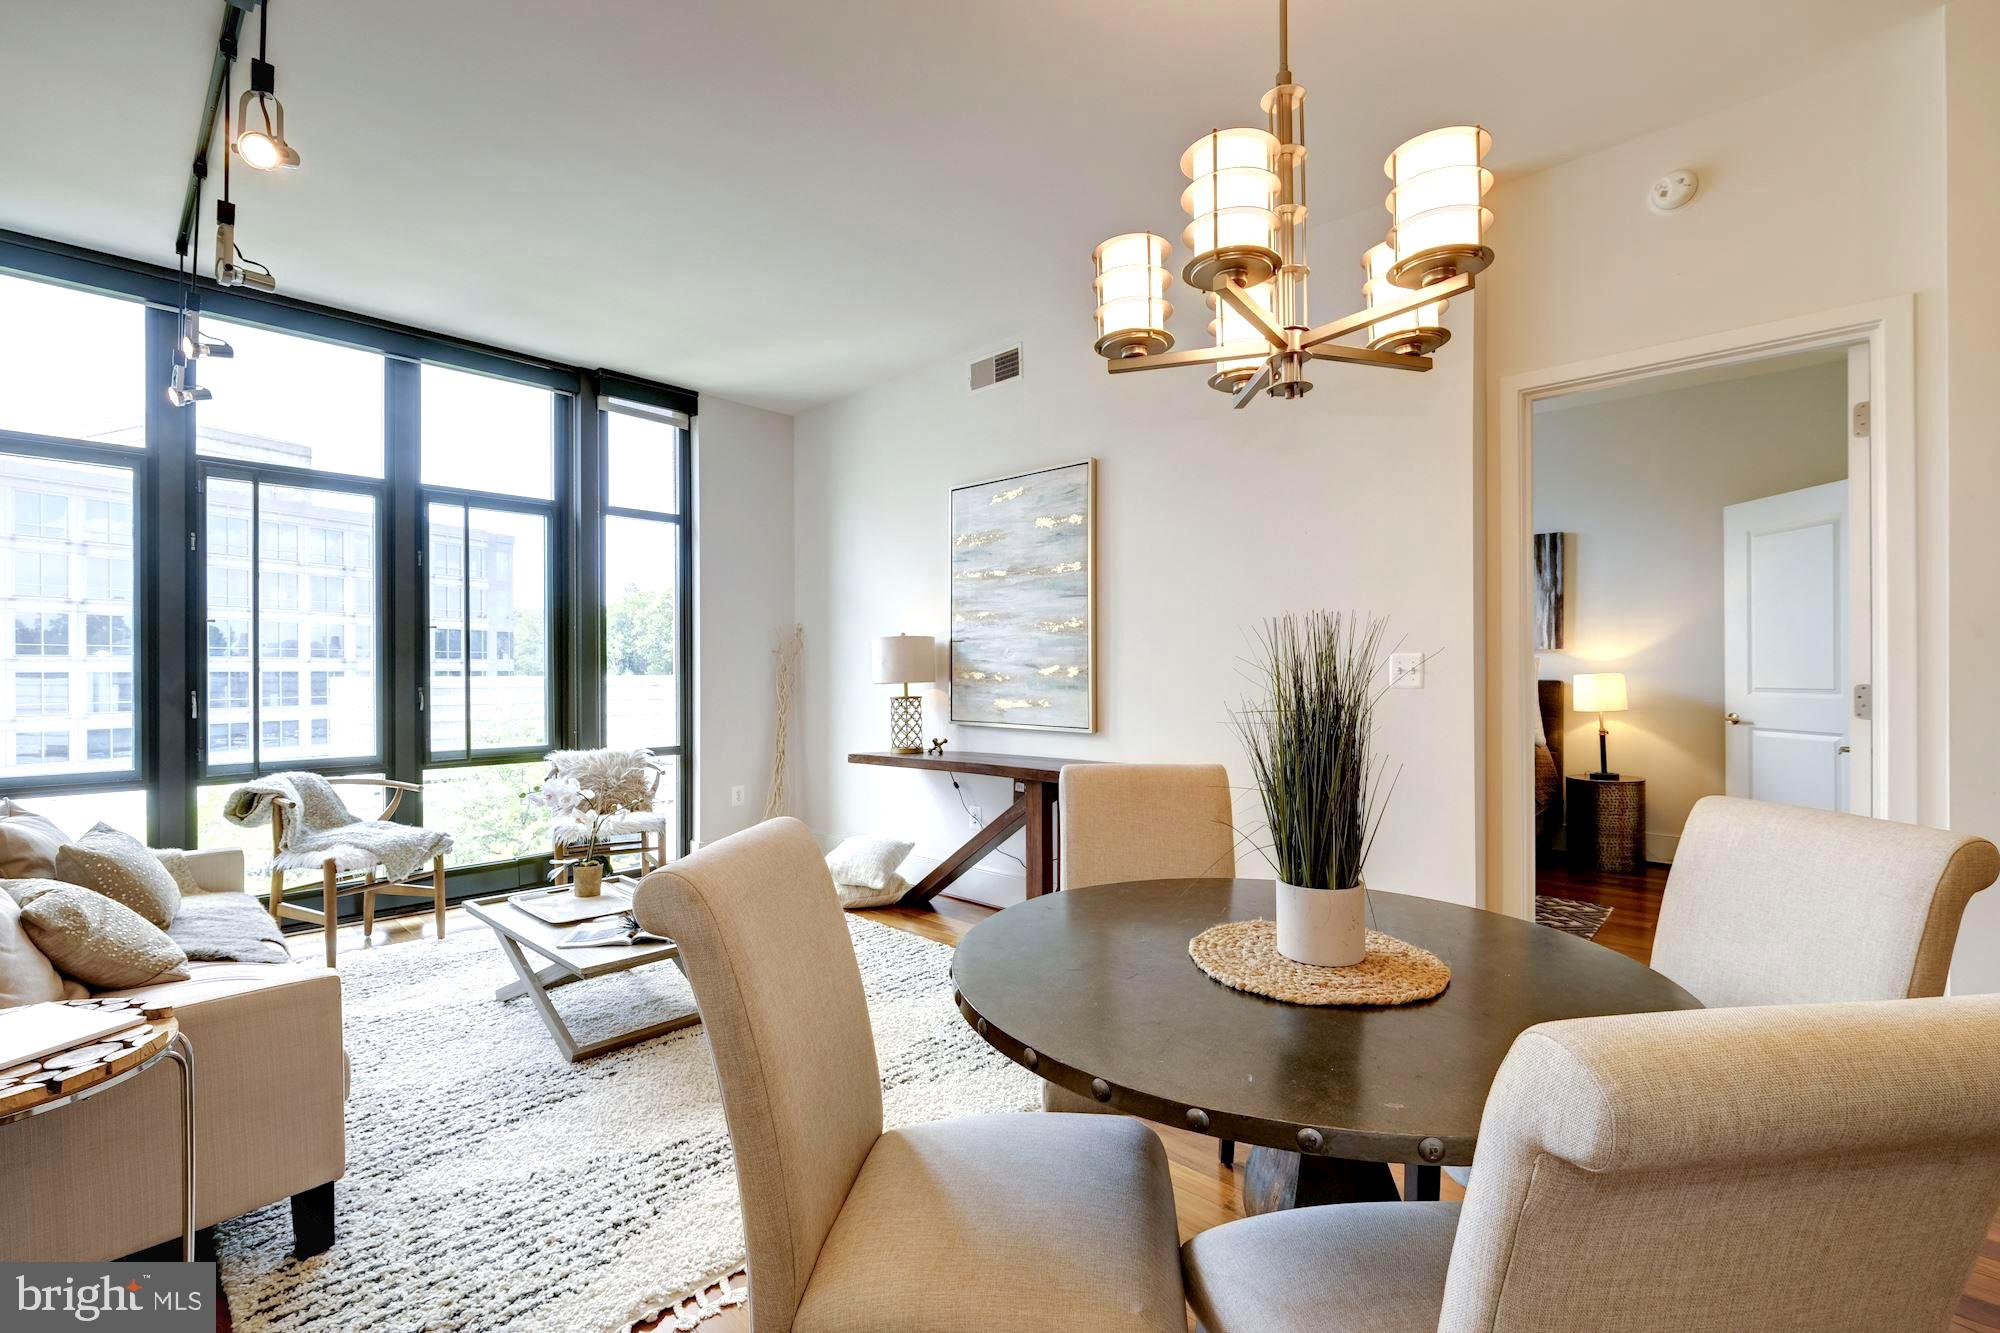 Situated high on the sixth floor, this elegant residence is made up of two bedrooms and two bathroom